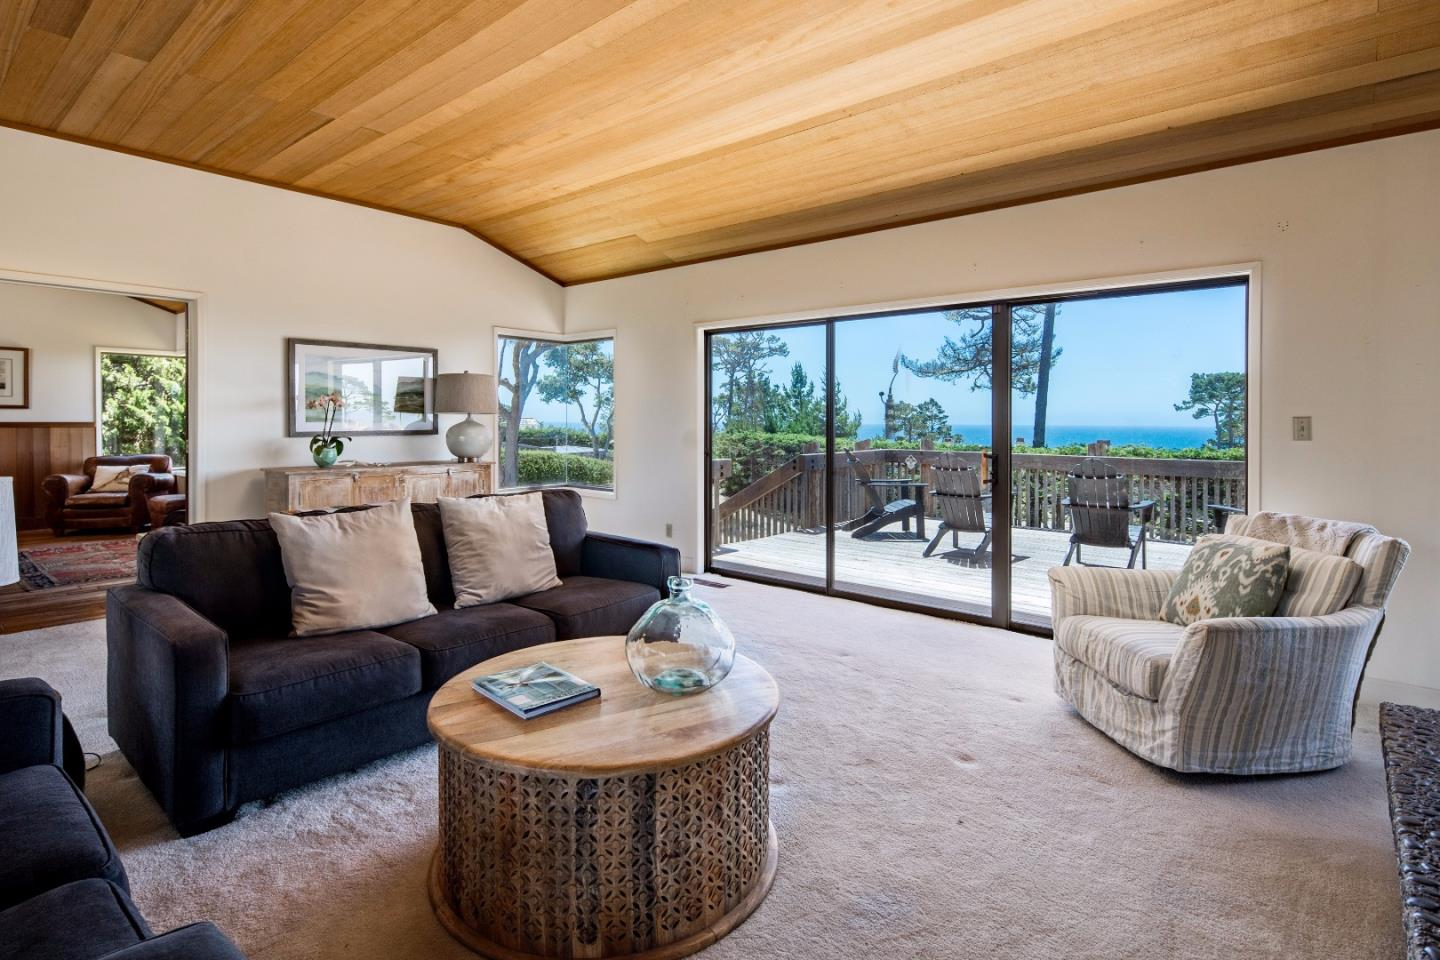 Additional photo for property listing at 3382 Laureles Lane  Pebble Beach, California 93953 United States